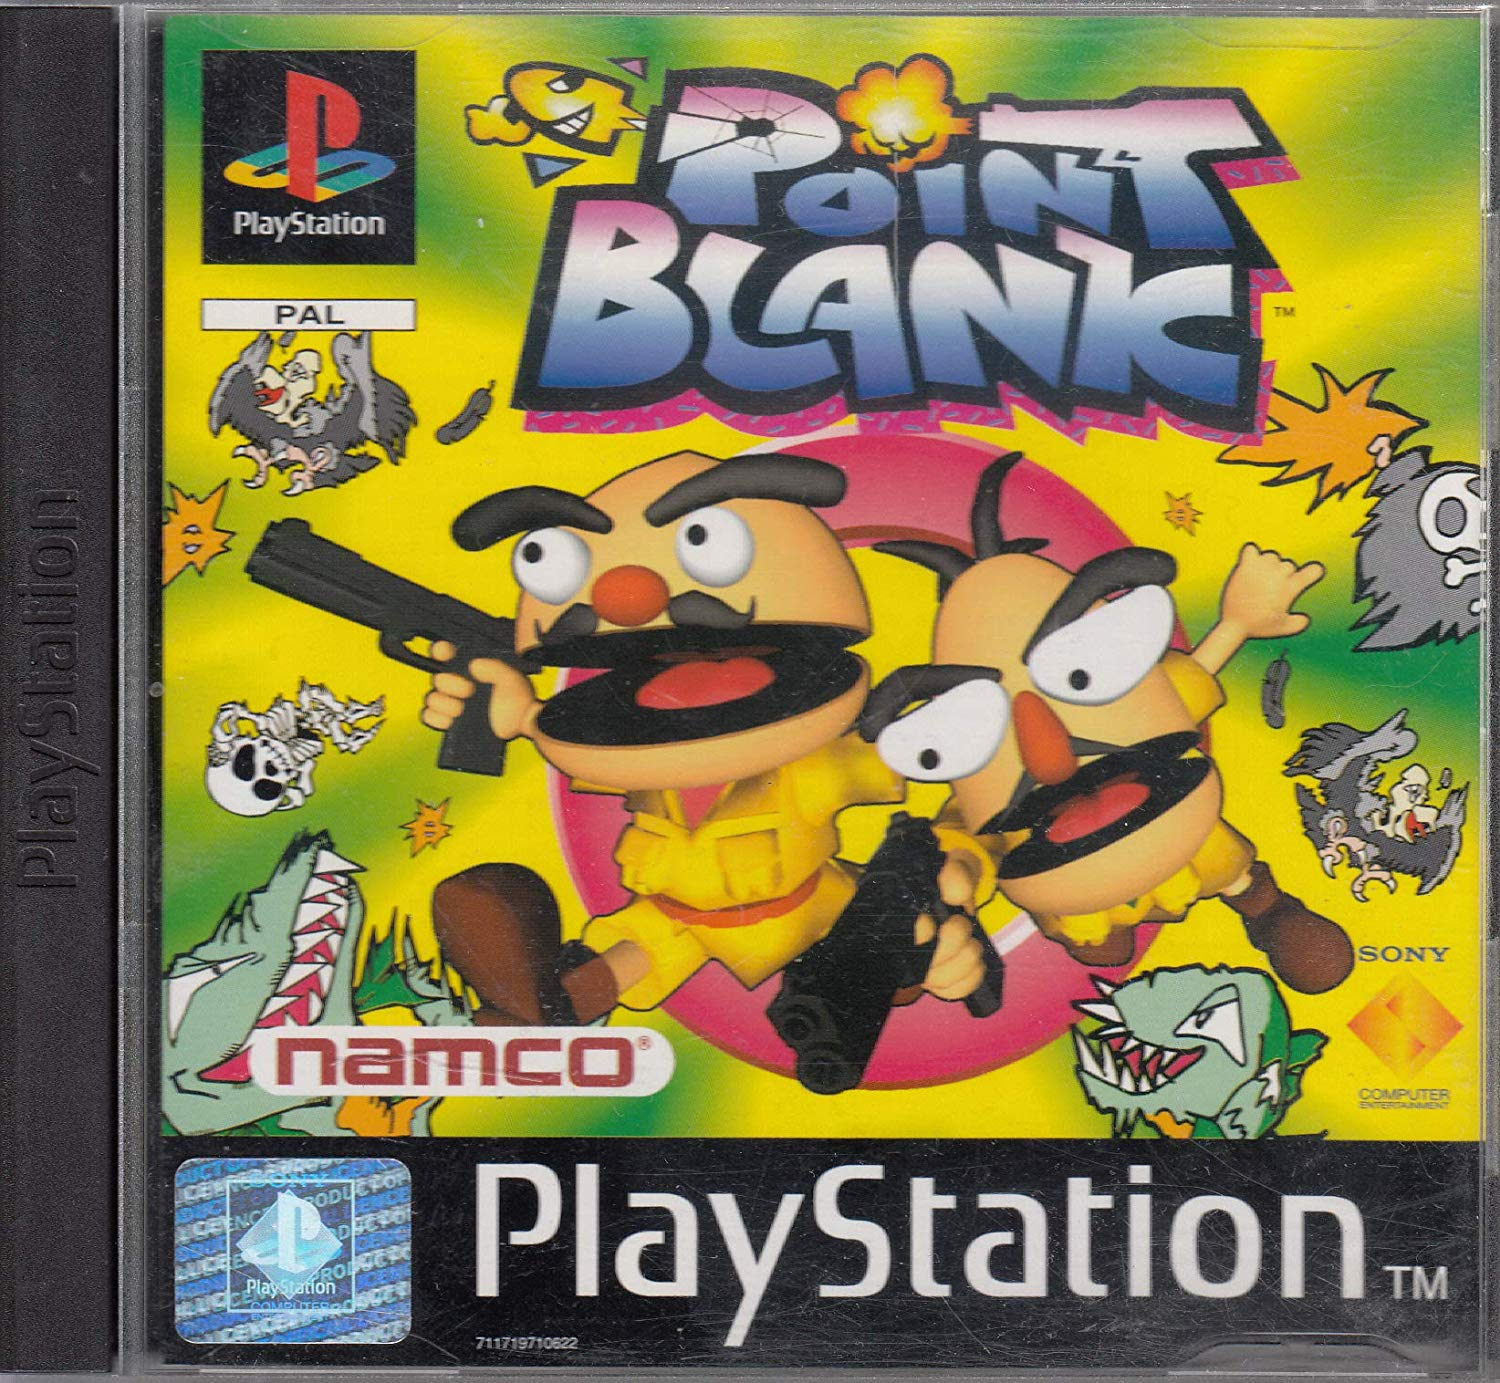 Amazon.com: Point Blank: Video Games